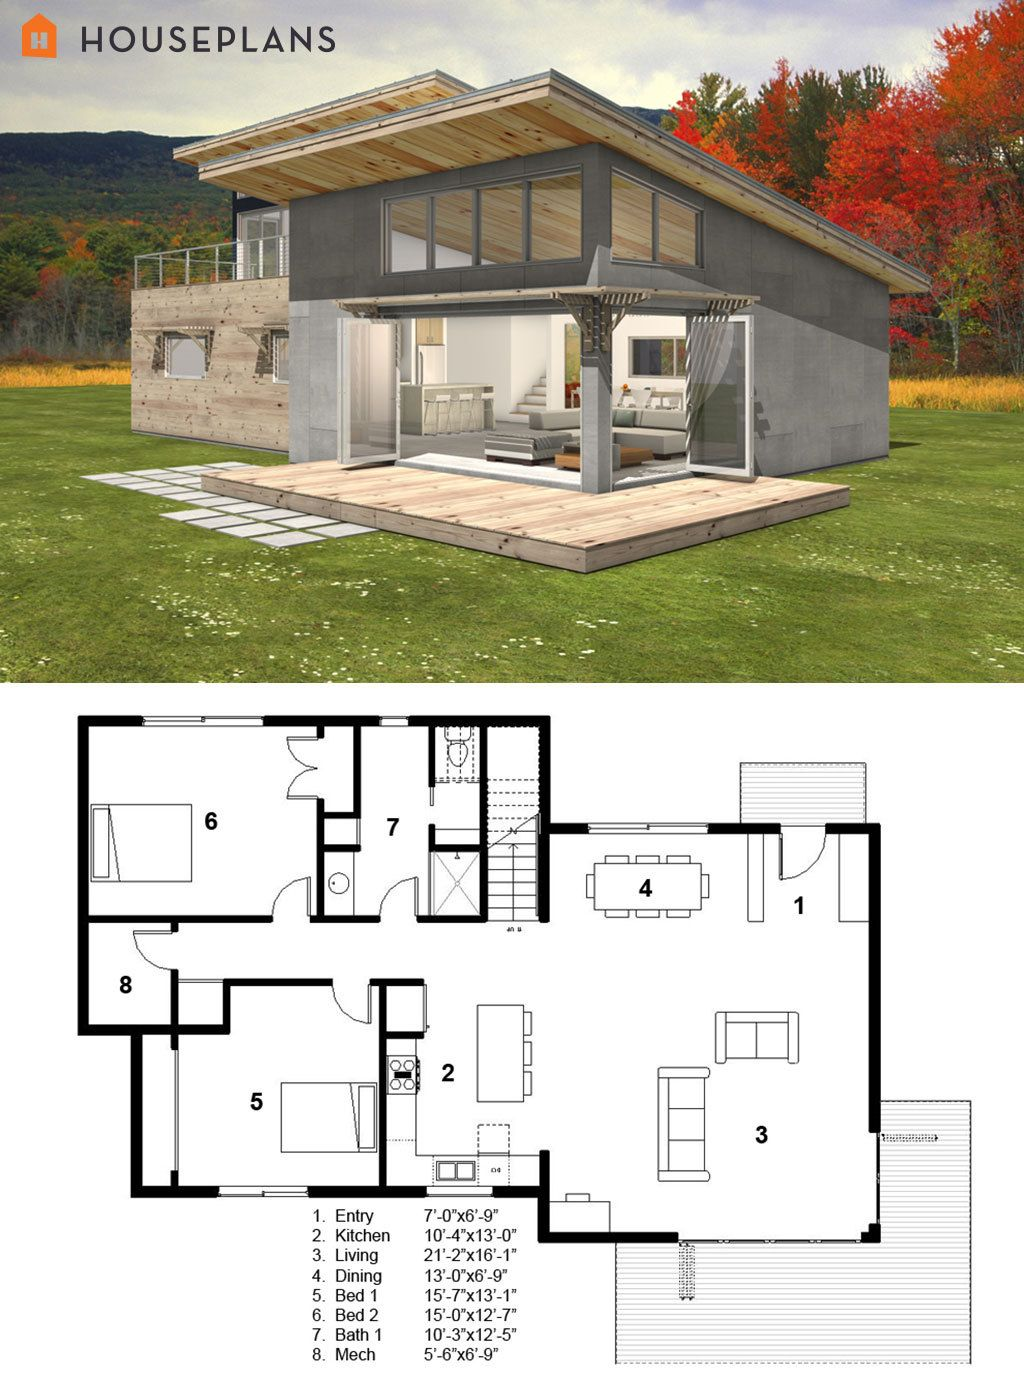 Small modern cabin house plan by freegreen energy for Cabin home designs